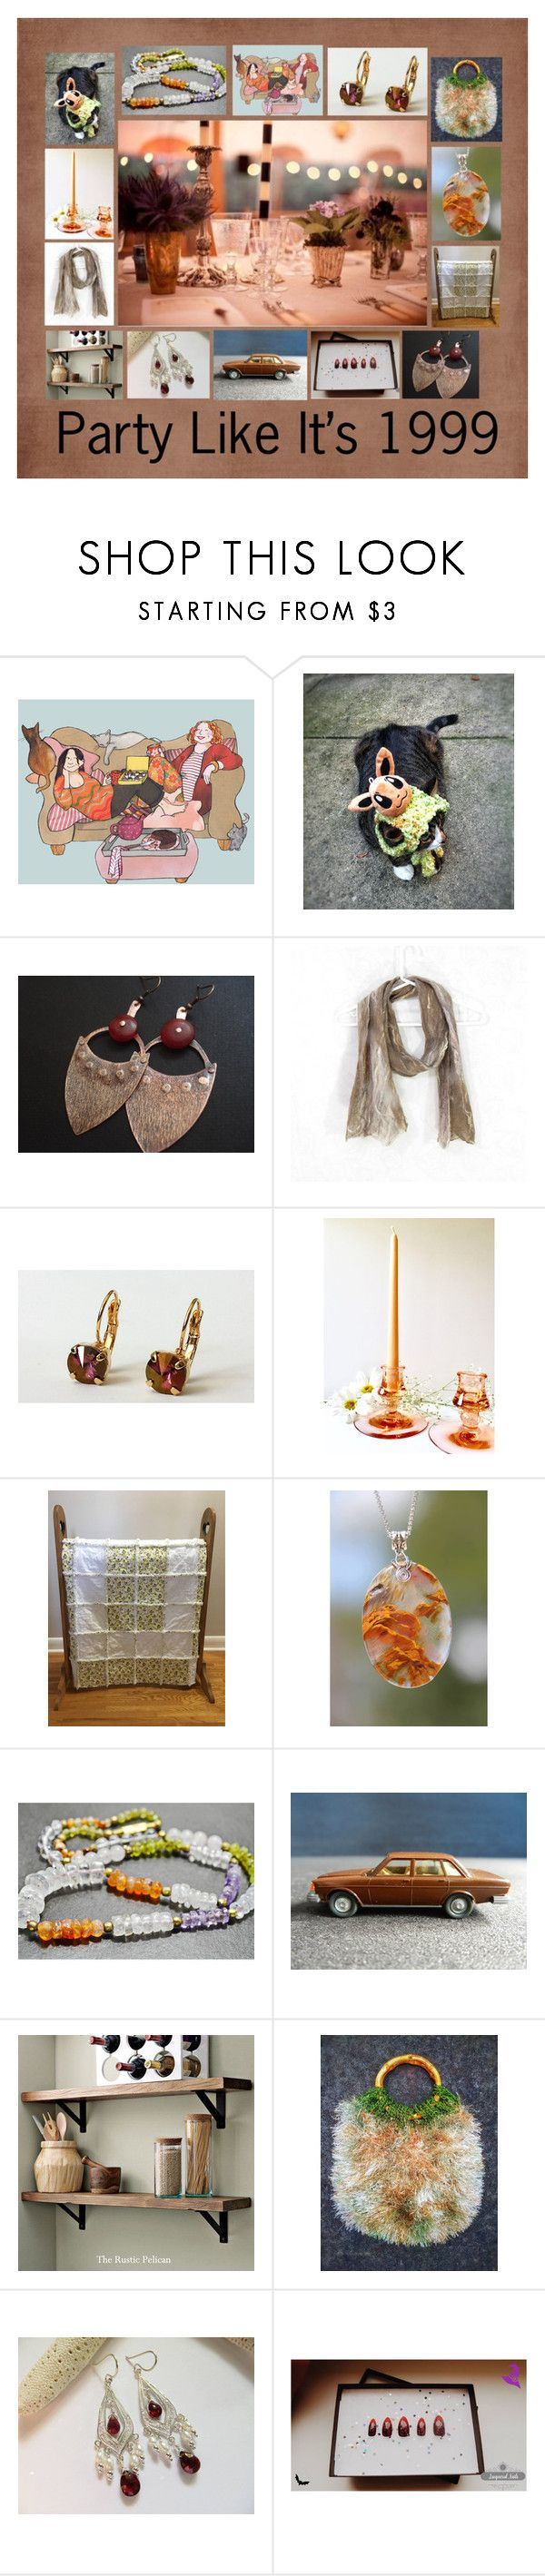 """""""Party Like It's 1999: Handmade Party Gift Ideas"""" by paulinemcewen ❤ liked on Polyvore featuring Rustico, rustic, vintage and country"""